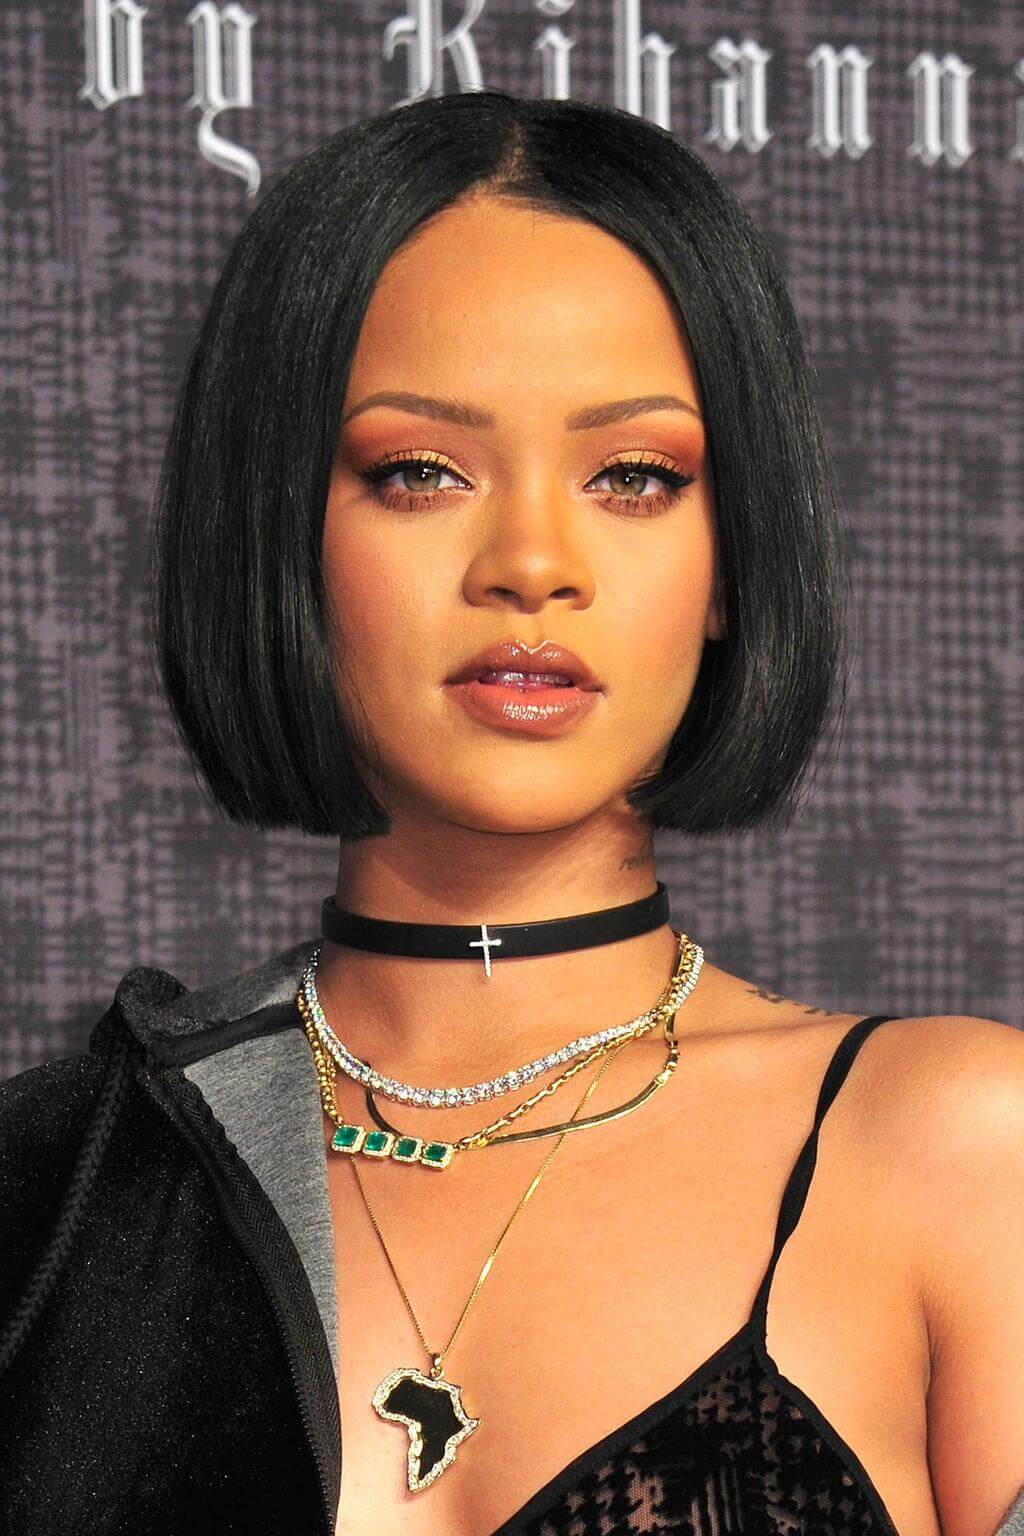 Bob Short Black Hairstyles – Trendy and Sophisticated!